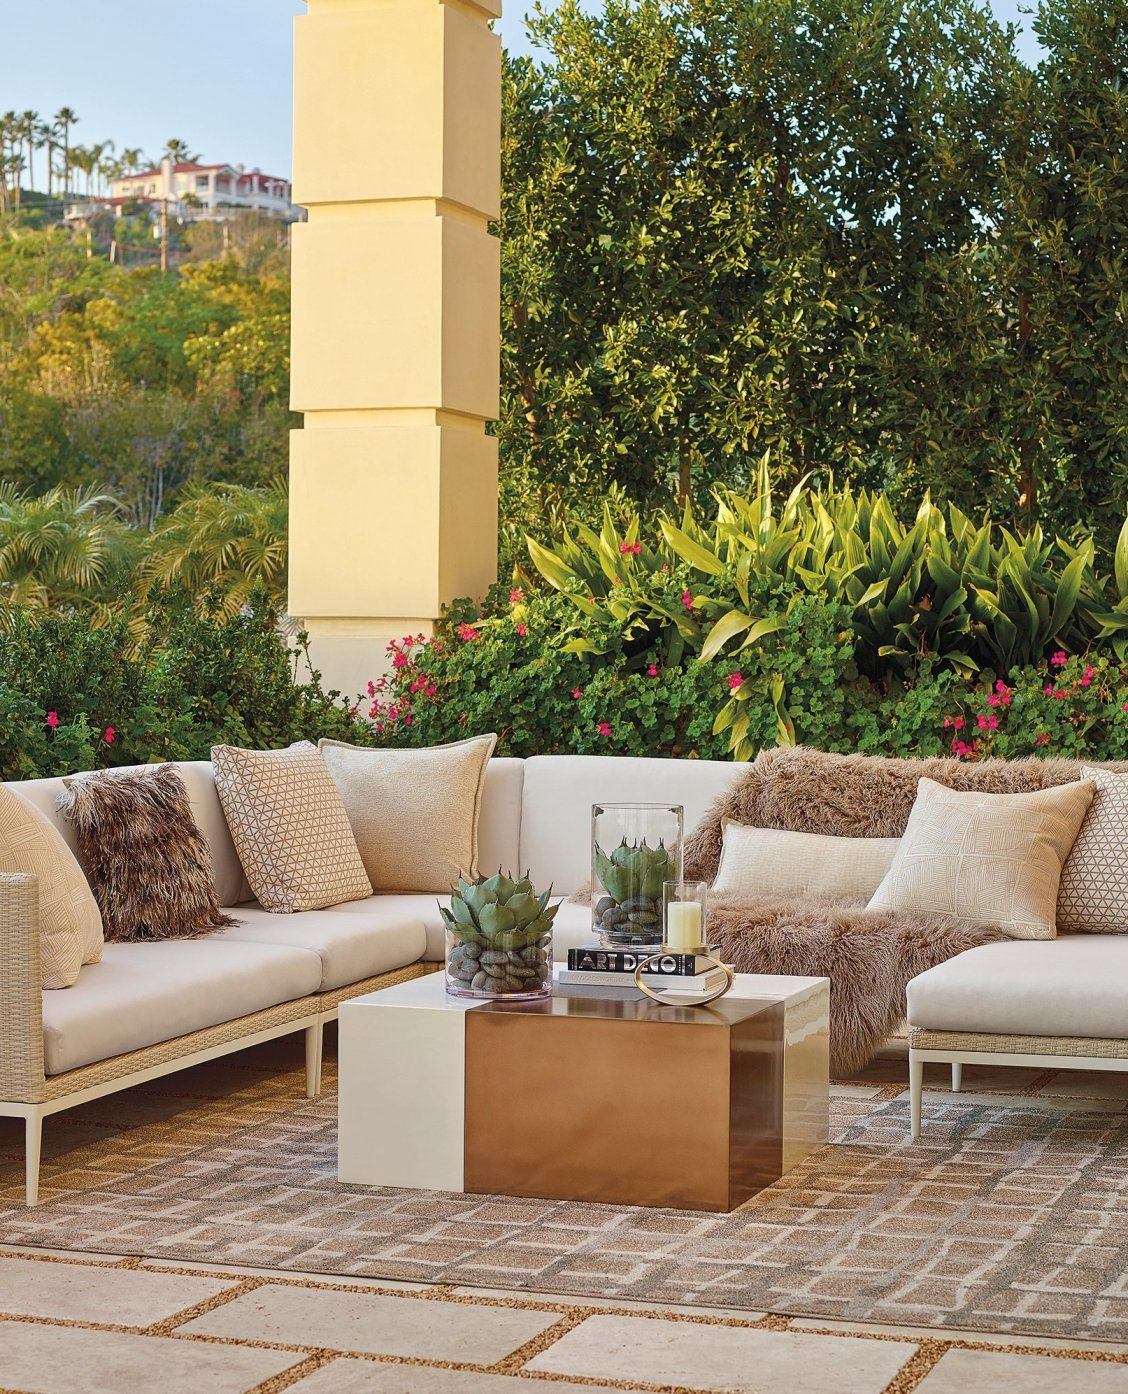 Palazzo Shell Modular Seating | Luxury outdoor furniture ... on Fine Living Patio Set id=88823